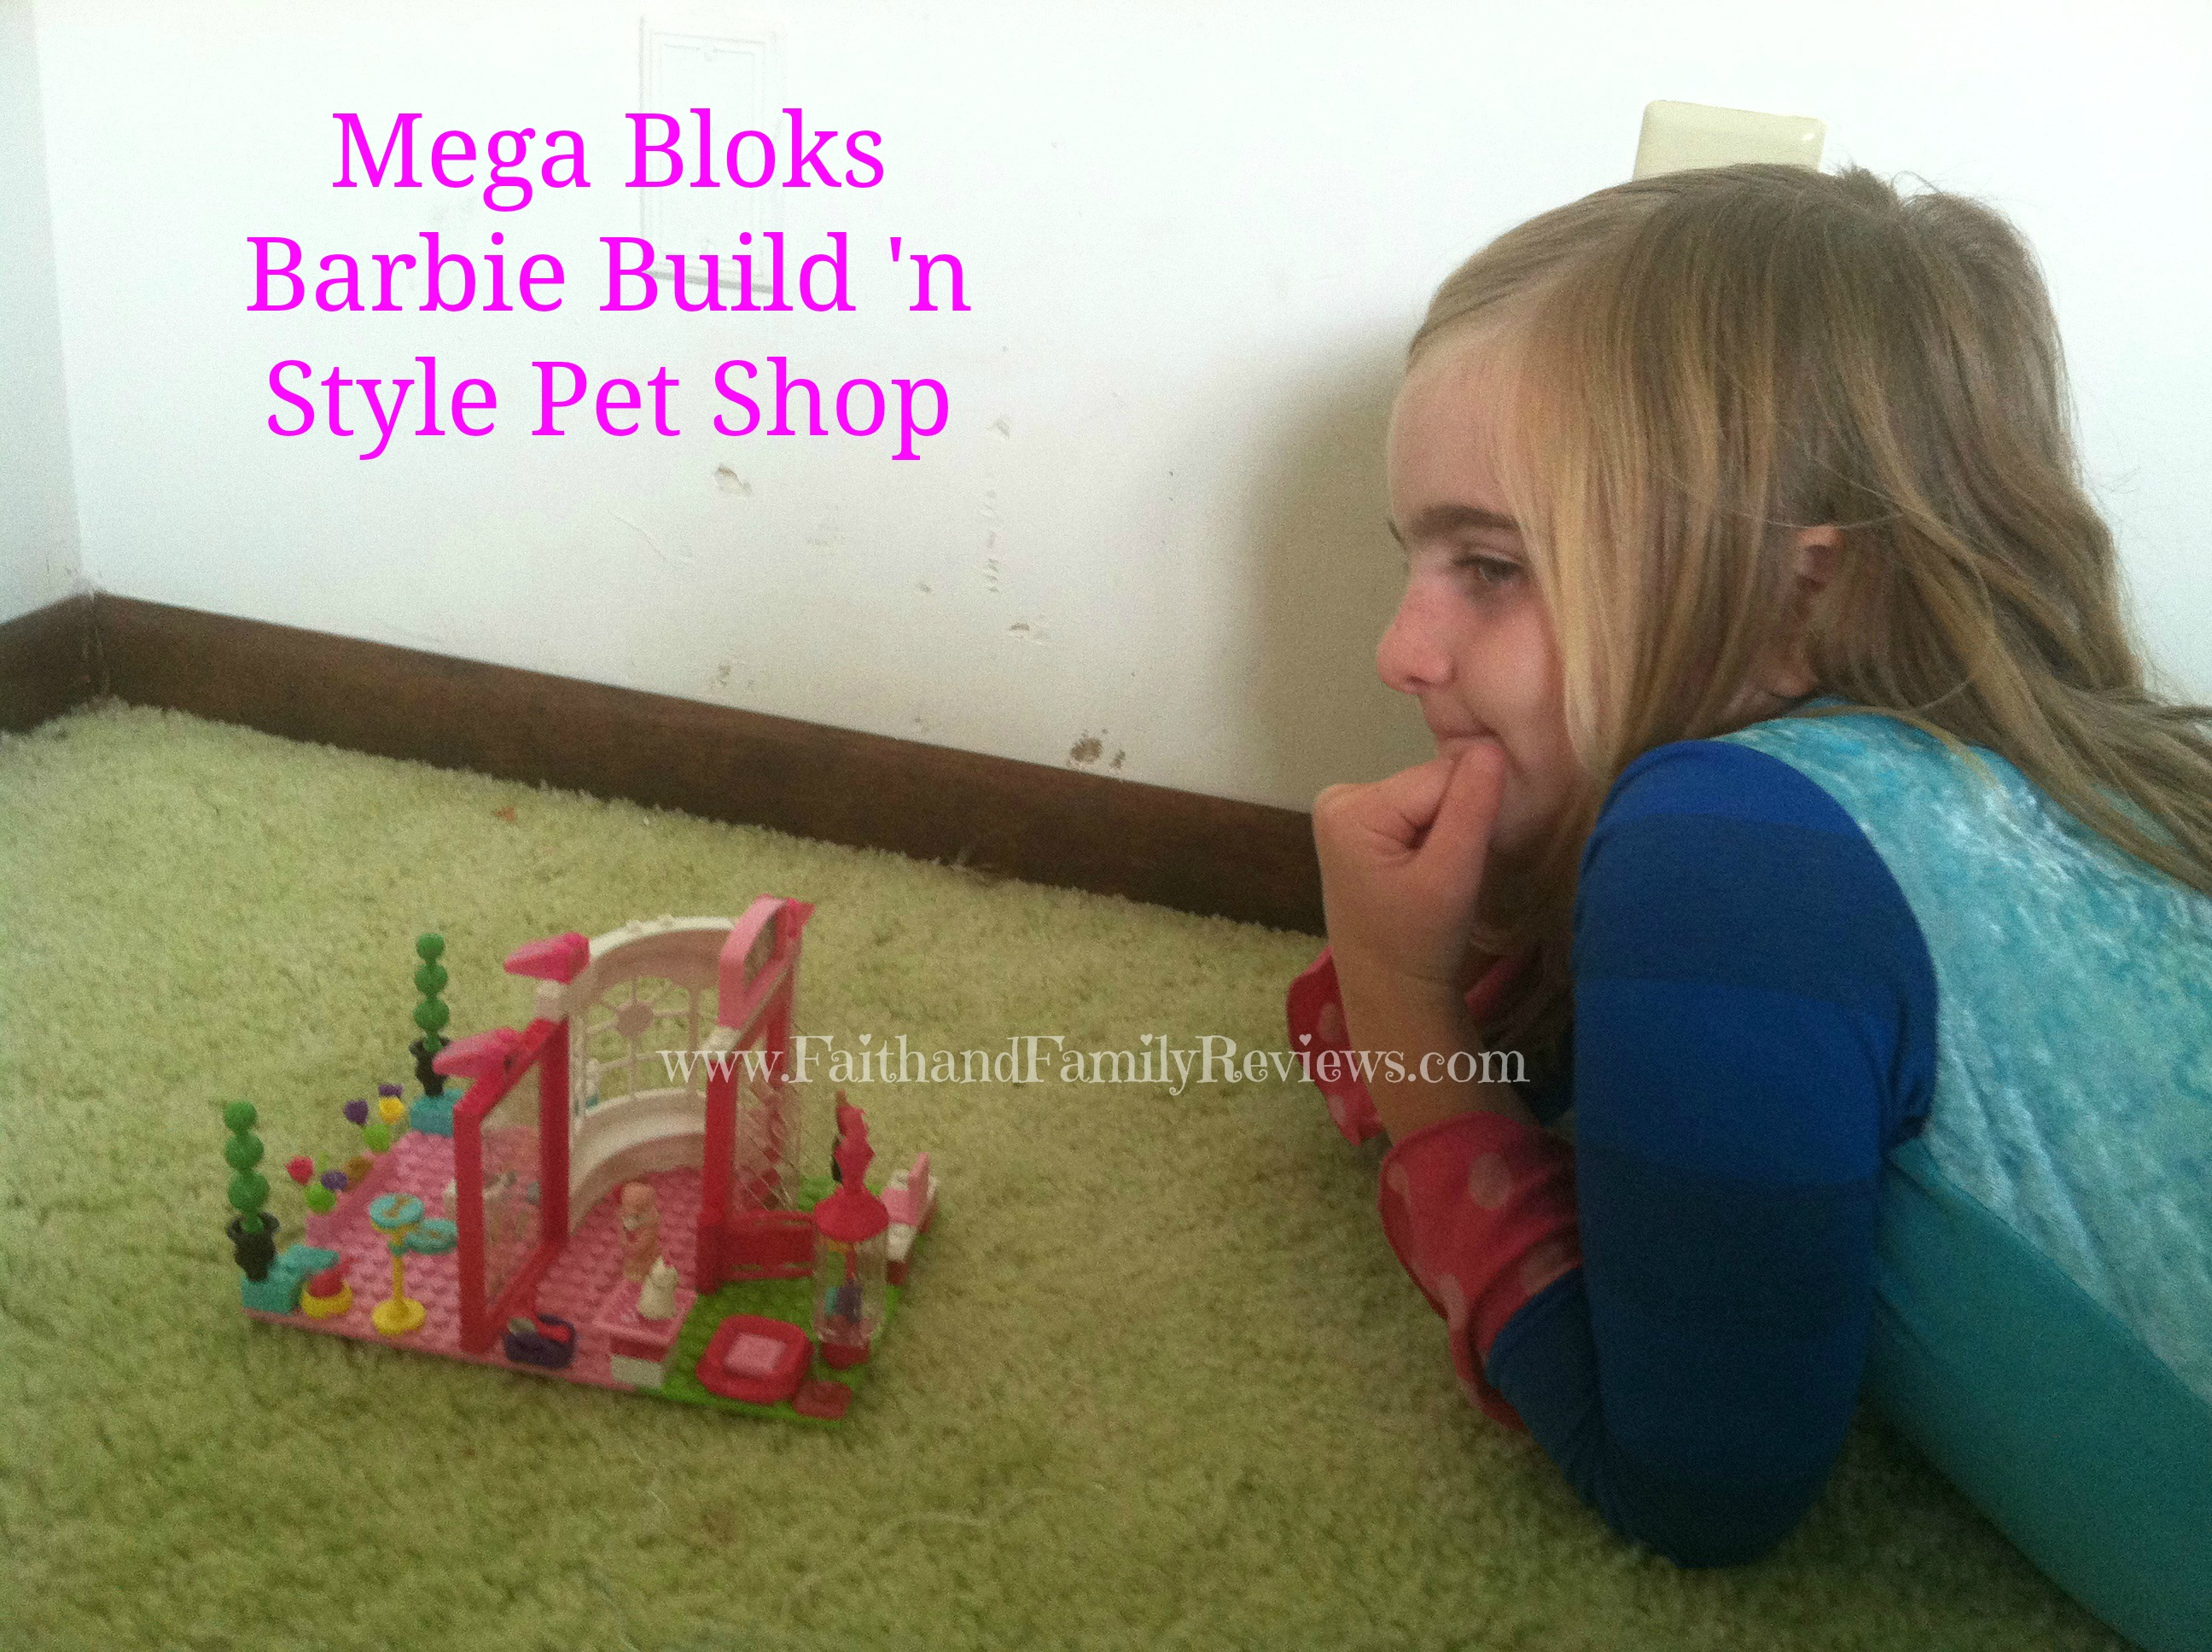 Blondie with Barbie Build 'n Style Pet Shop_